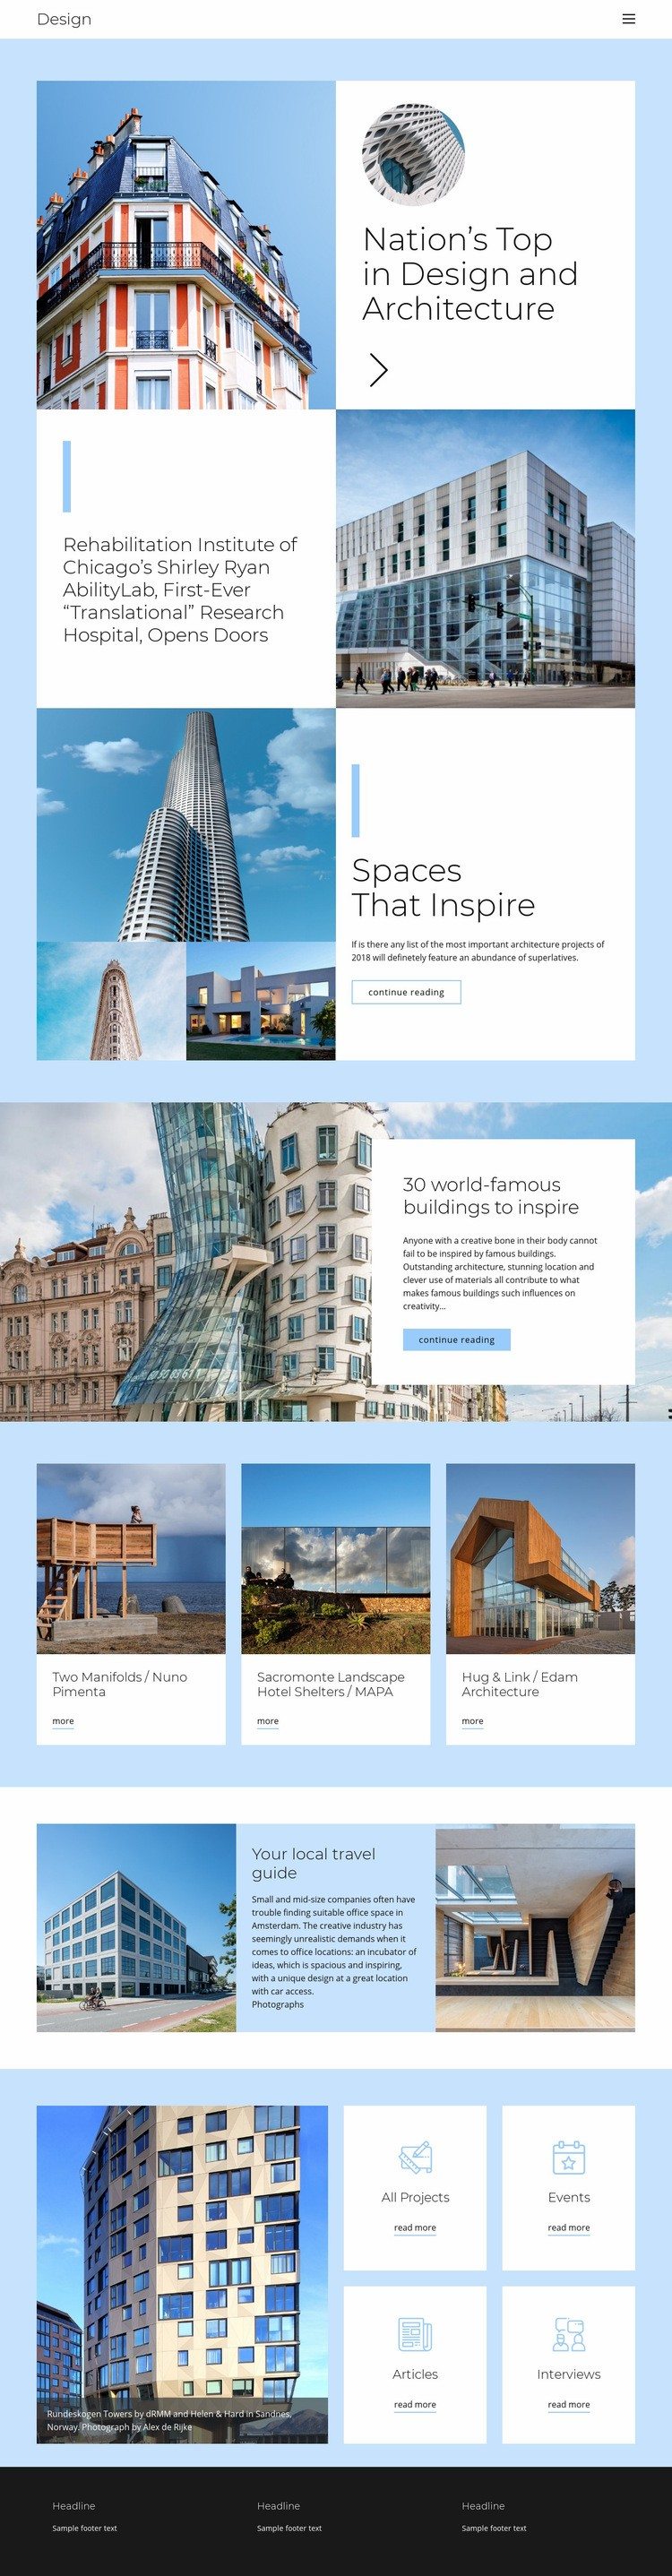 Architecture city guide Html Code Example